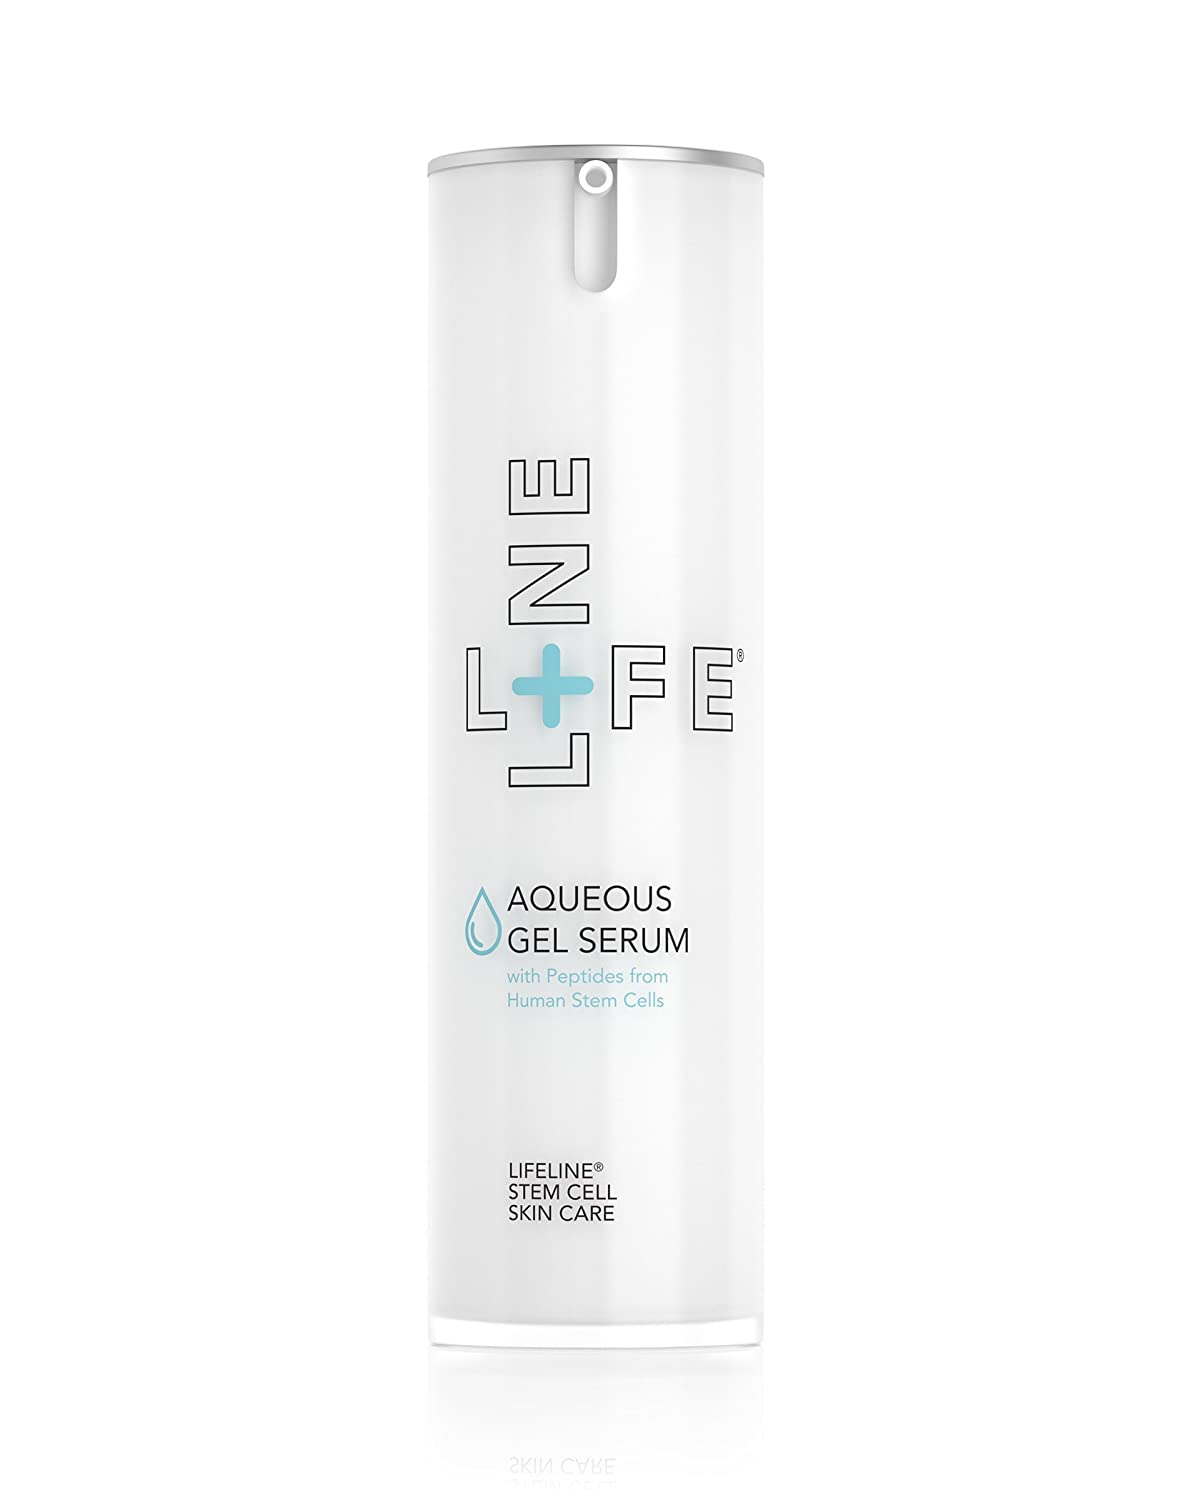 Lifeline Aqueous Gel Serum Fragrance Free intensely moisturizing- suppresses fine line- reduces redness improves micro circulation